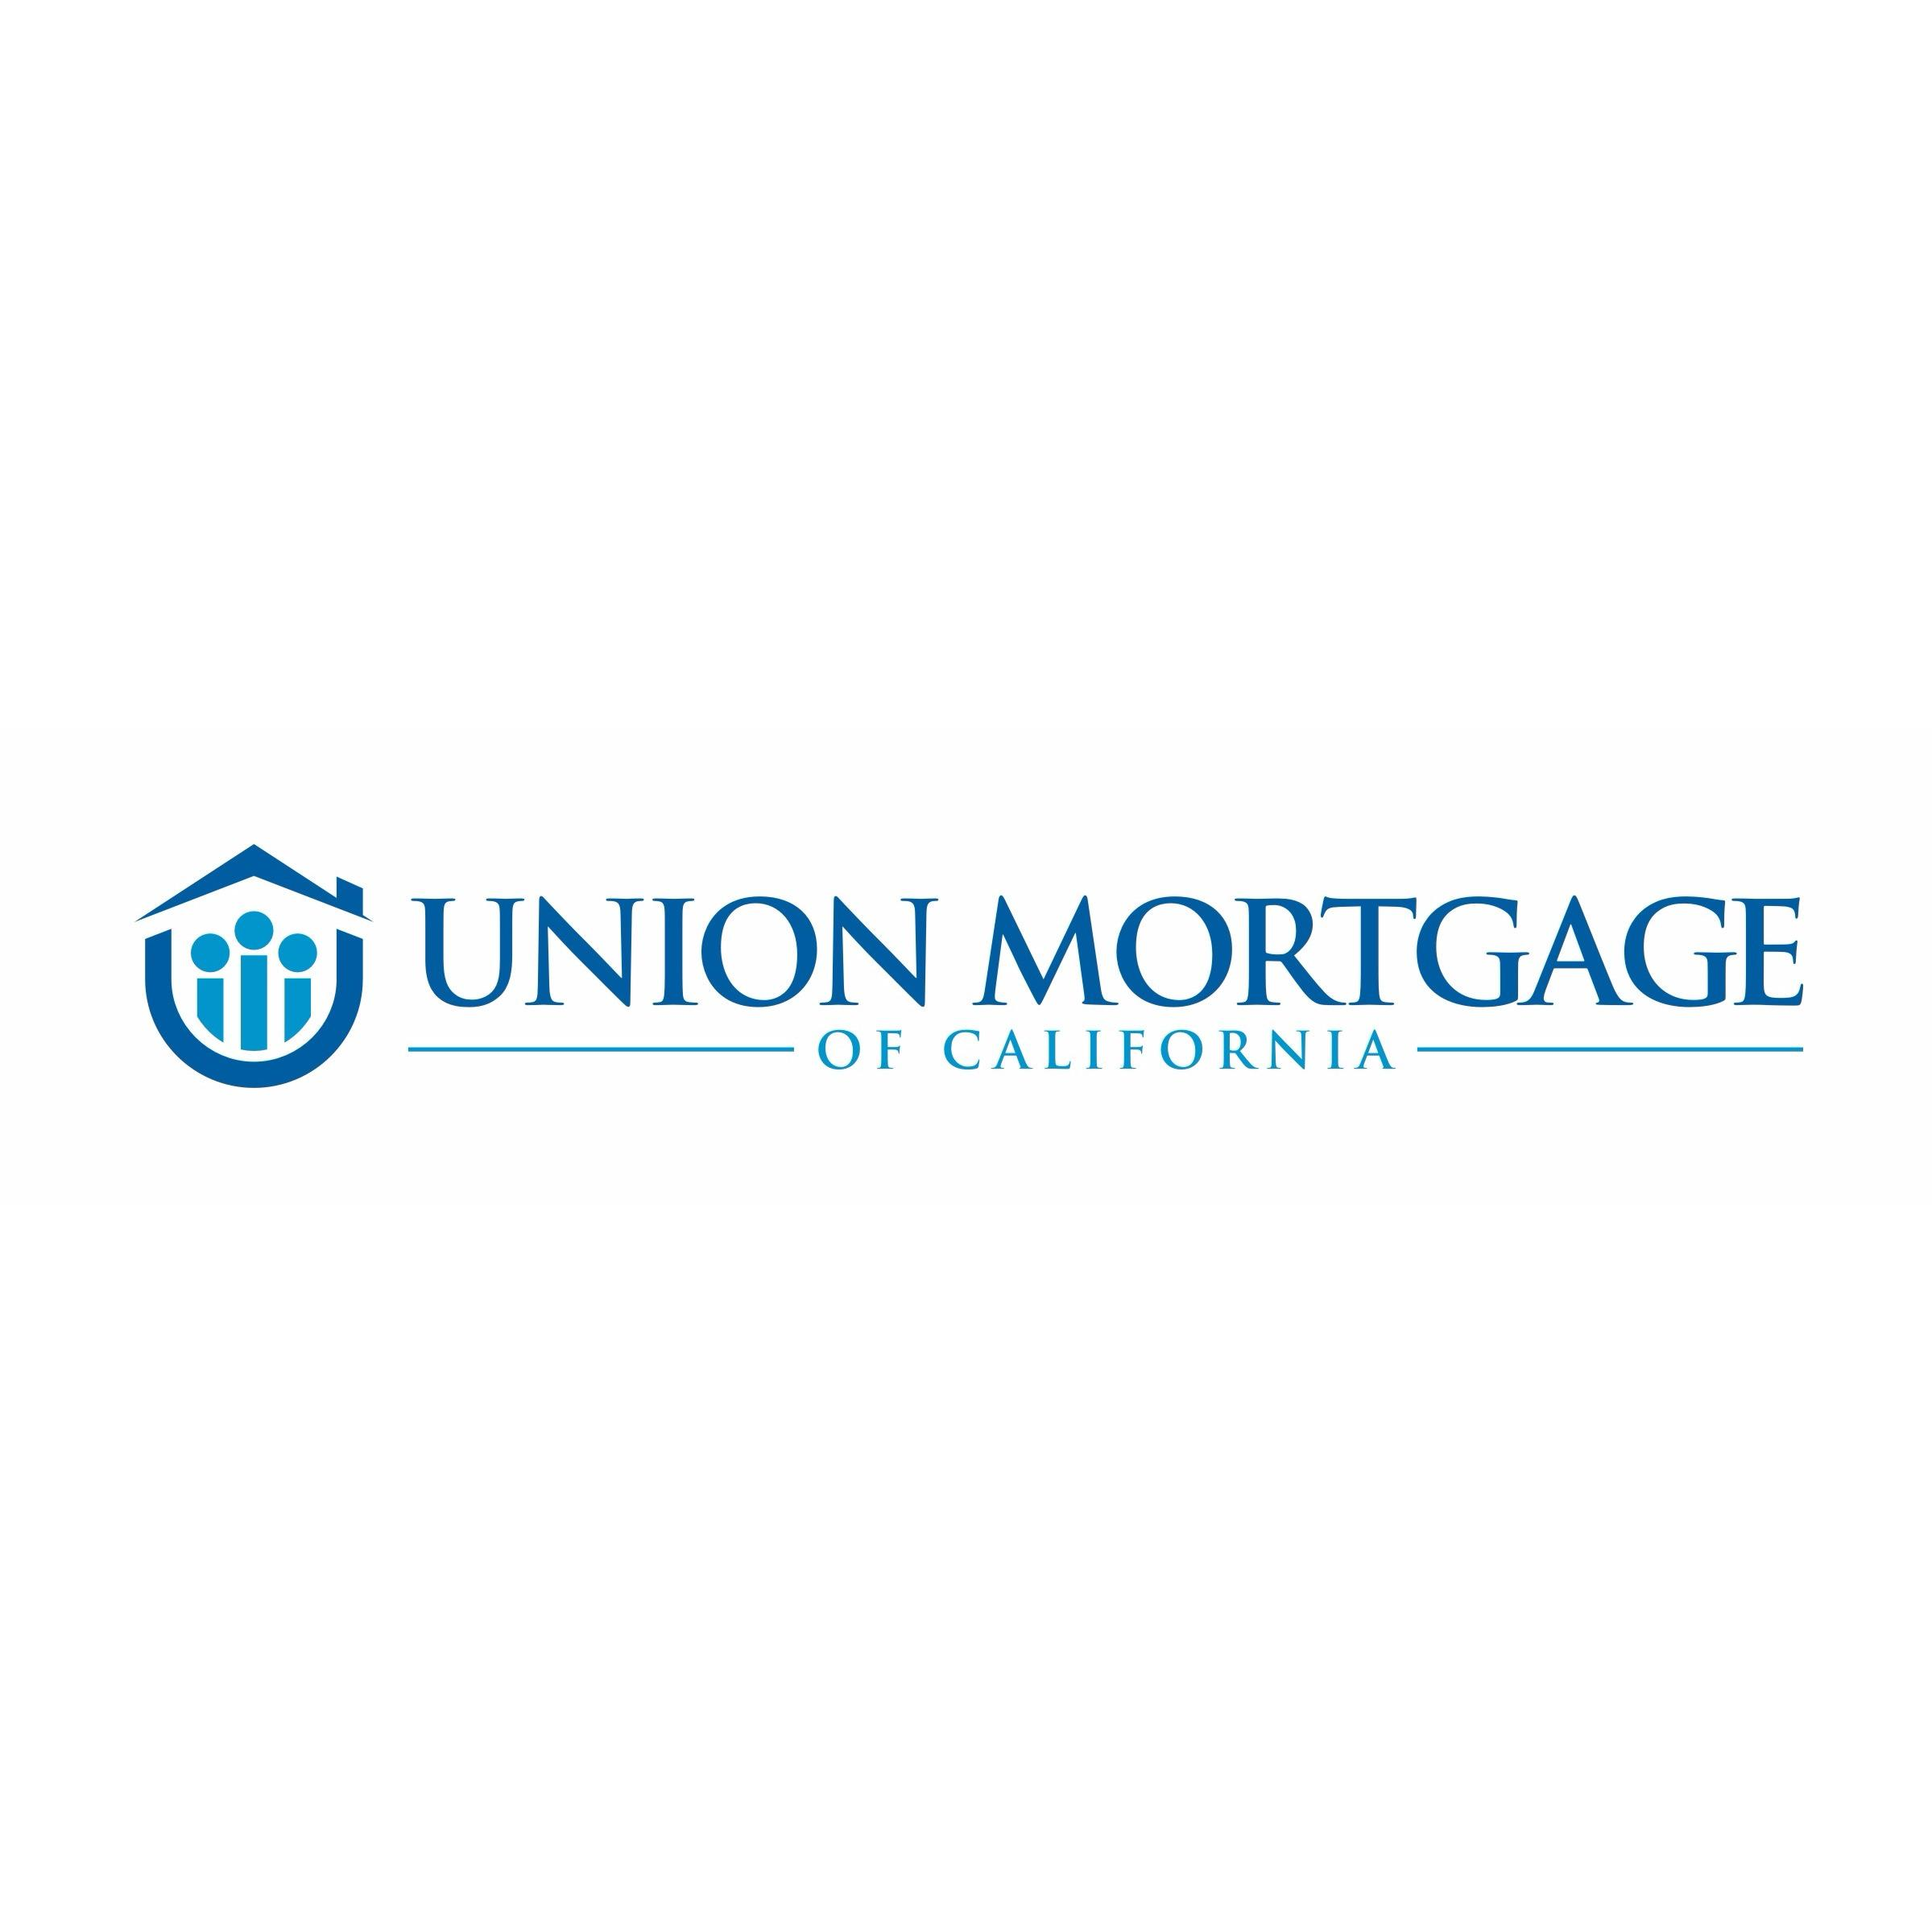 Union Mortgage of California